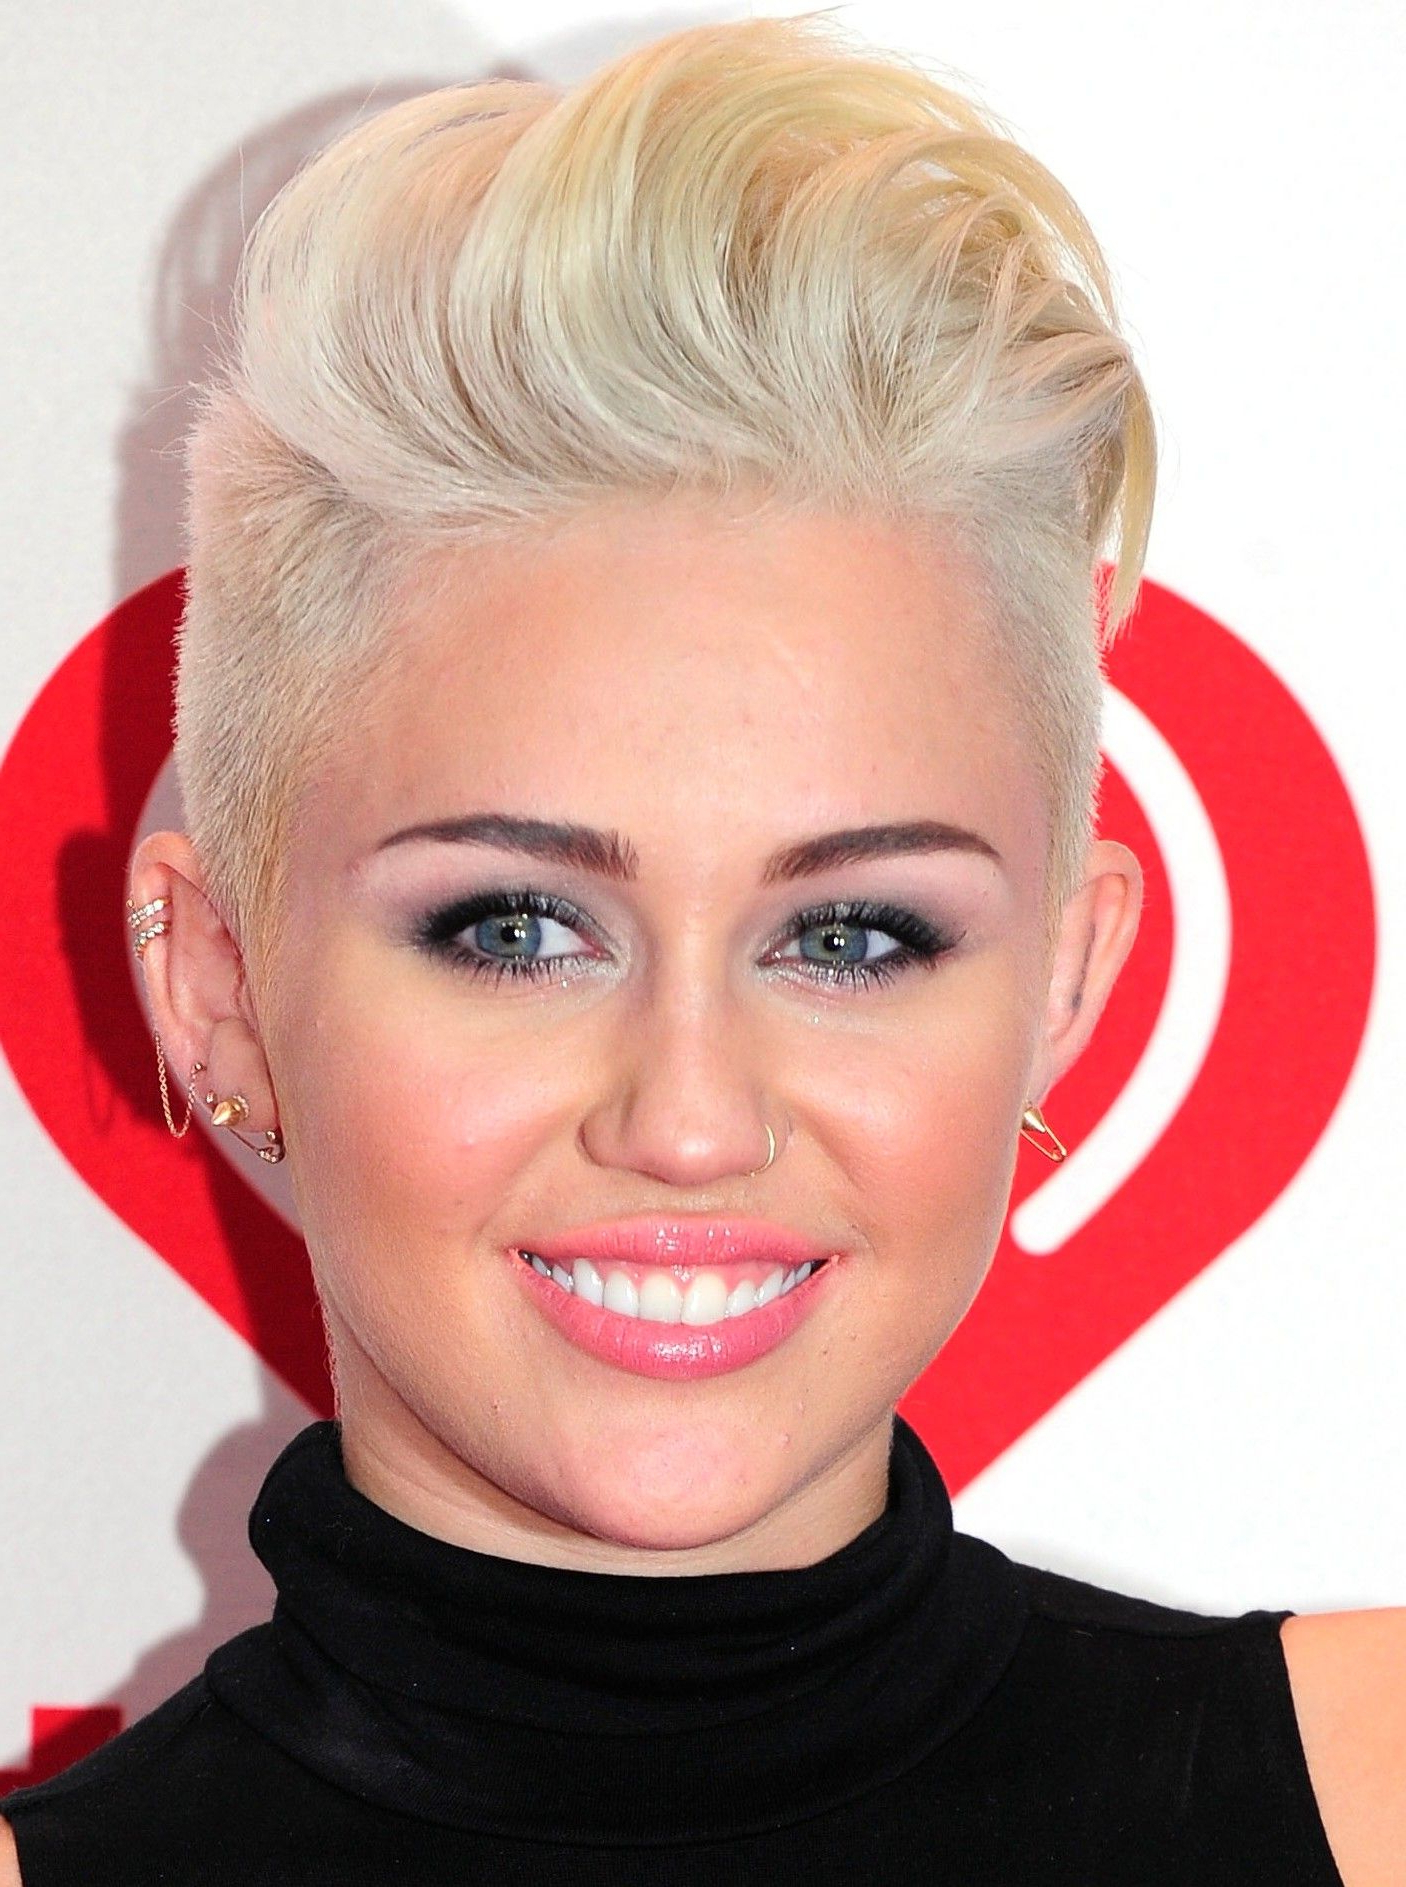 Miley Cyrus Short Hairstyle | Hair | Pinterest | Short Hair Styles With Regard To Miley Cyrus Short Hairstyles (View 1 of 25)